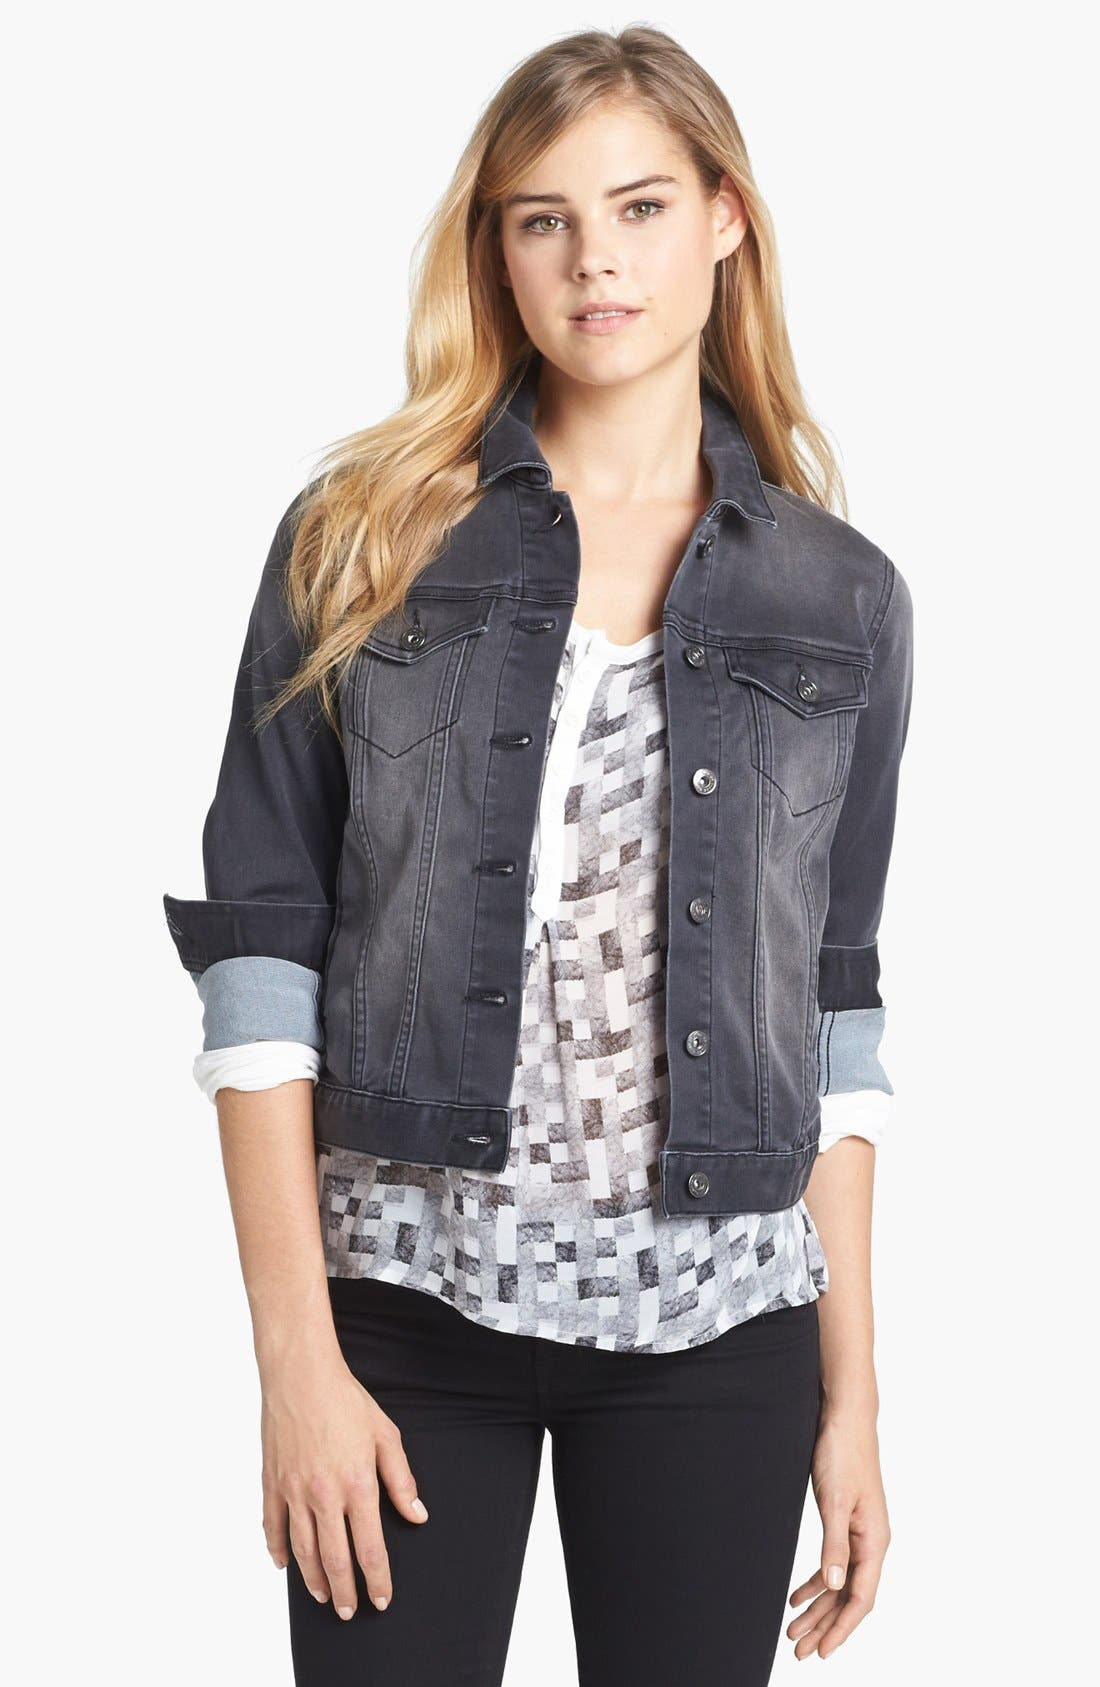 Alternate Image 1 Selected - Two by Vince Camuto 'Stone' Jean Jacket